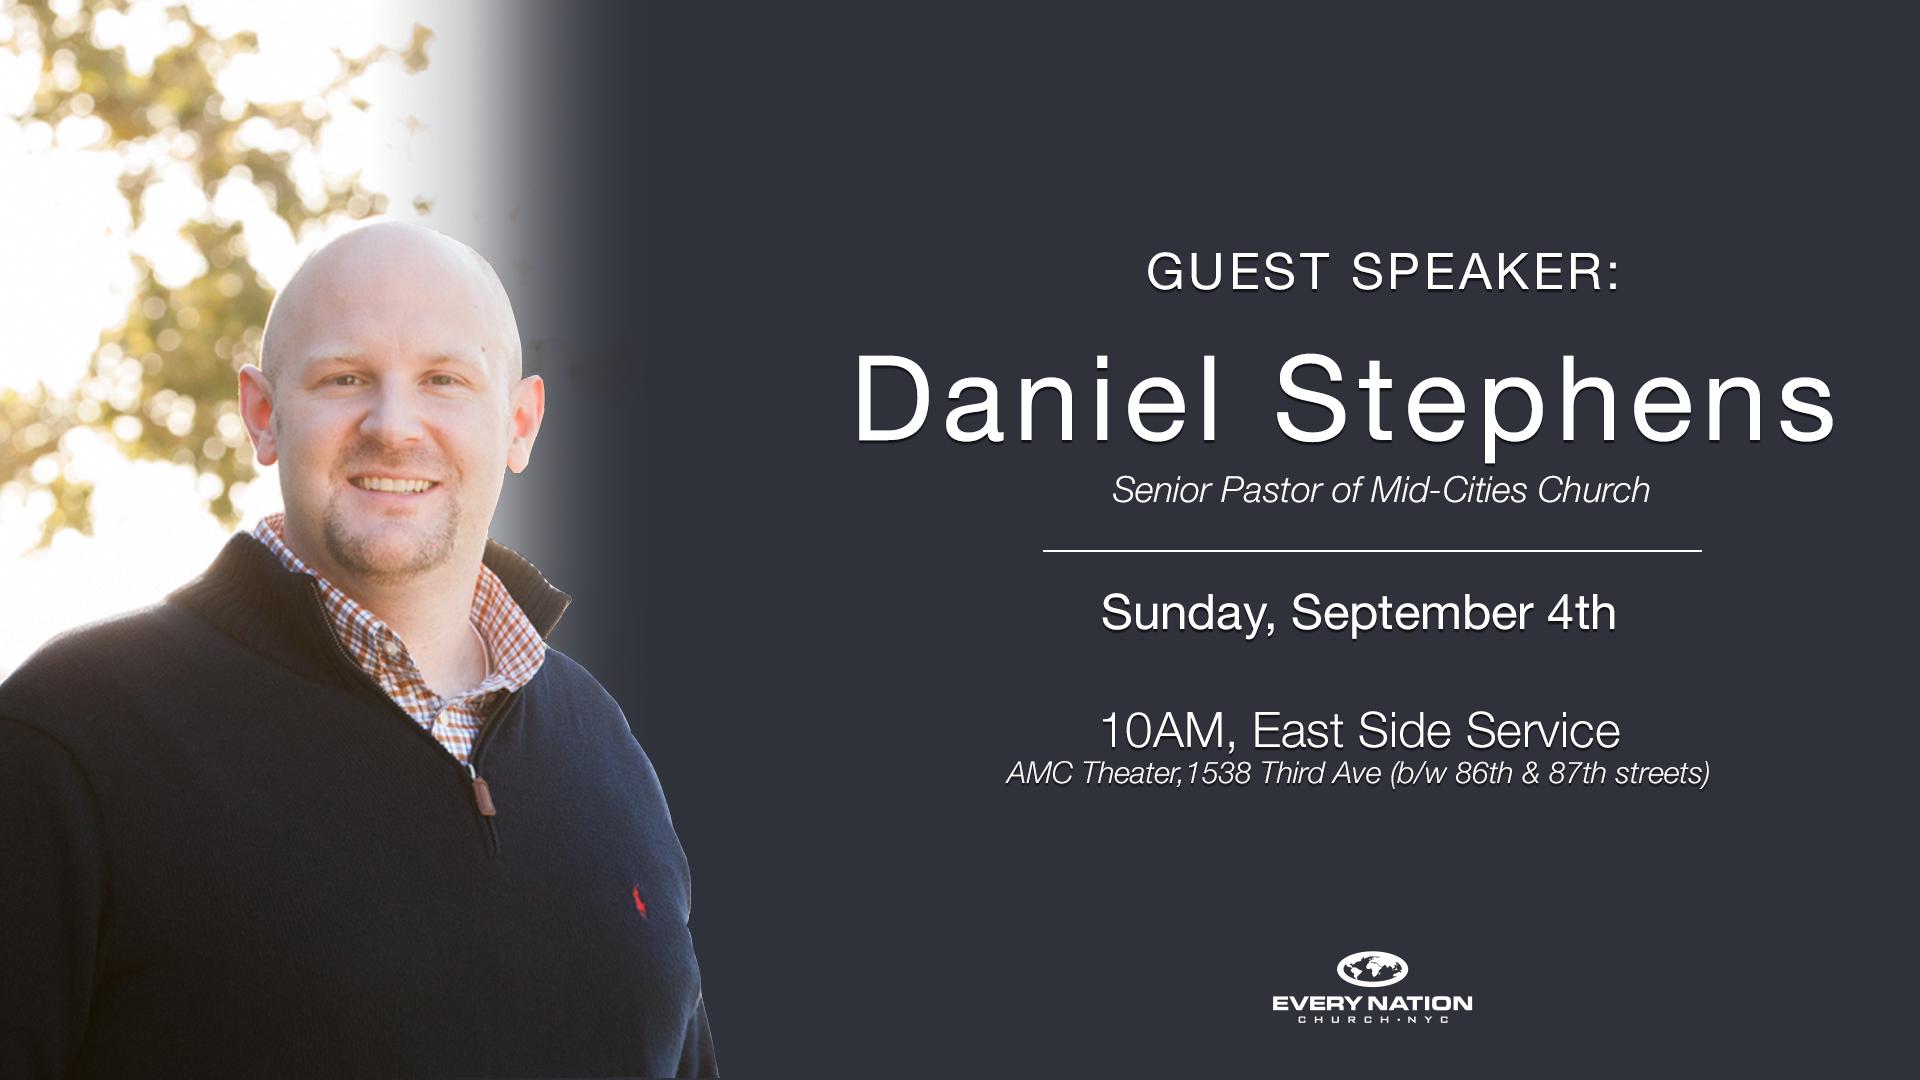 Daniel Stephens at the East Side Service